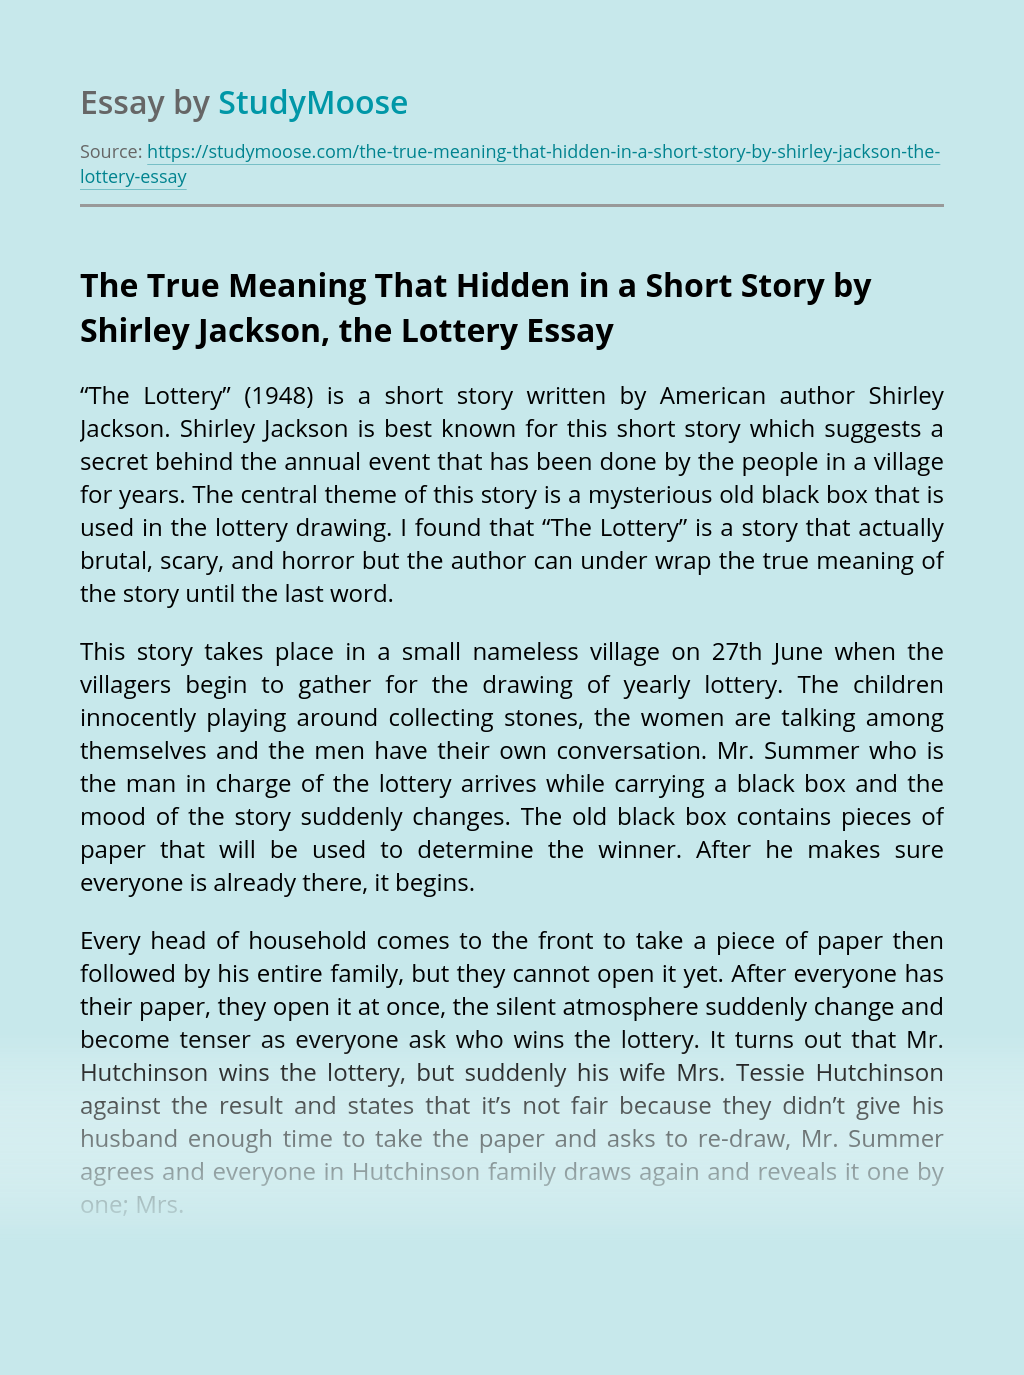 The True Meaning That Hidden in a Short Story by Shirley Jackson, the Lottery